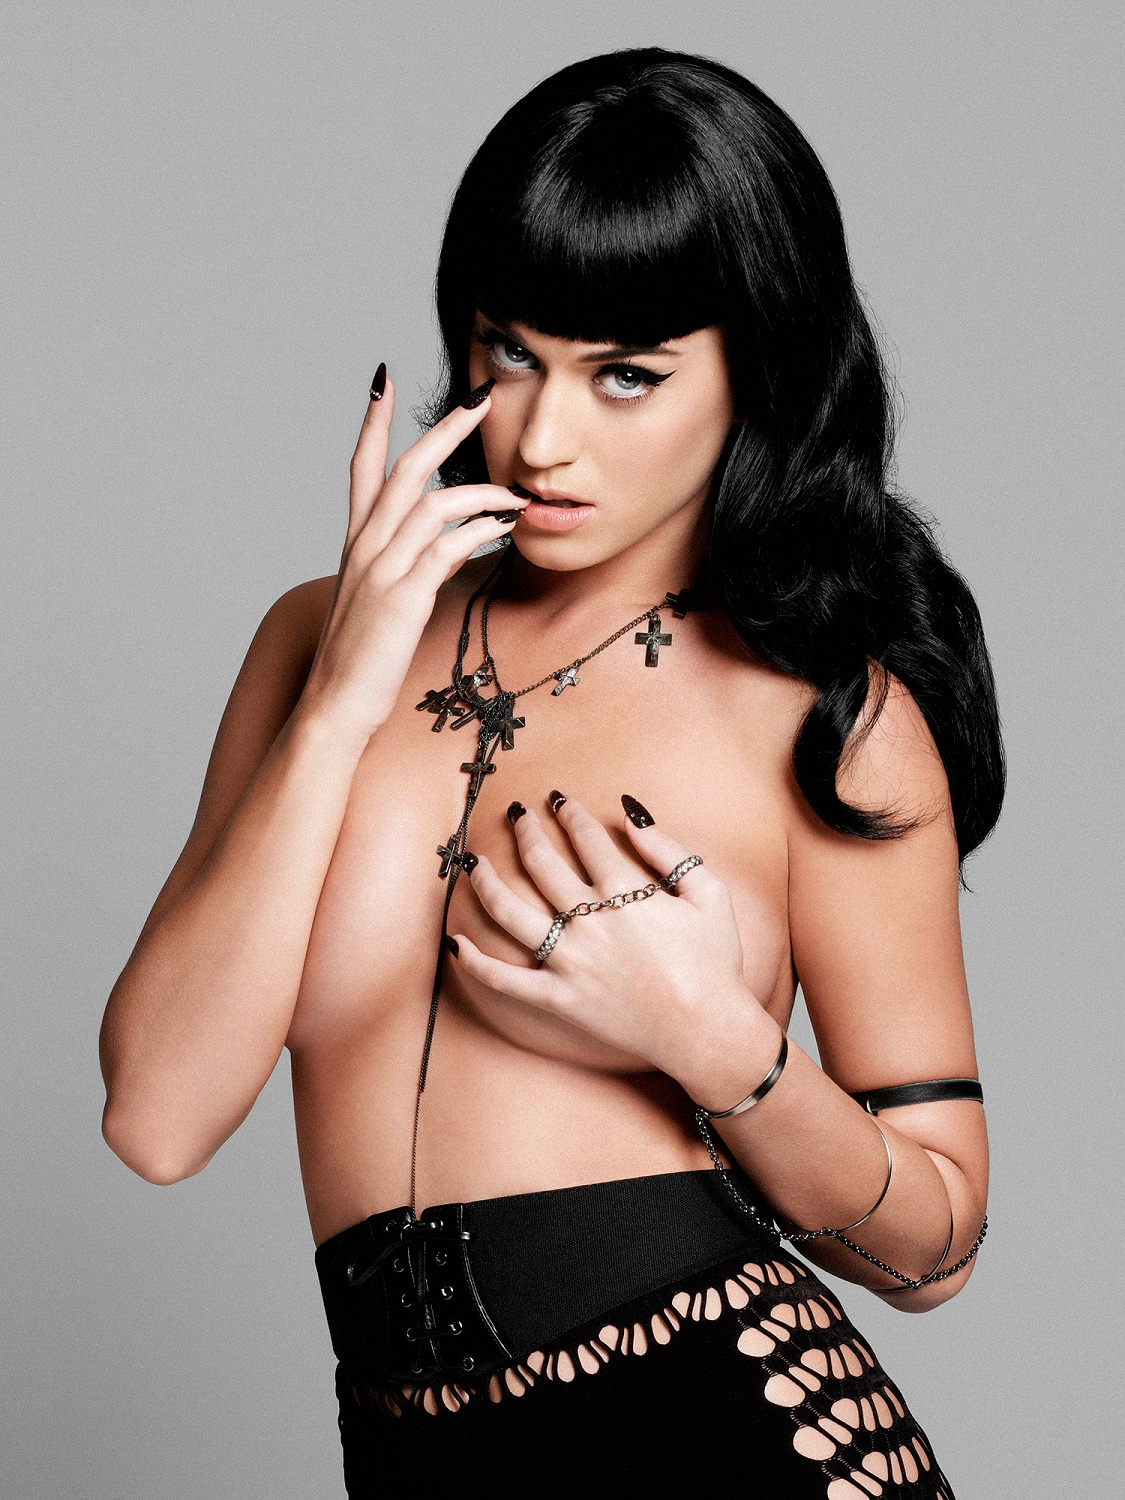 Katy-Perry-Esquire-UK-Magazine-Photoshoot-2010-01-3.jpg - 619.92 KB